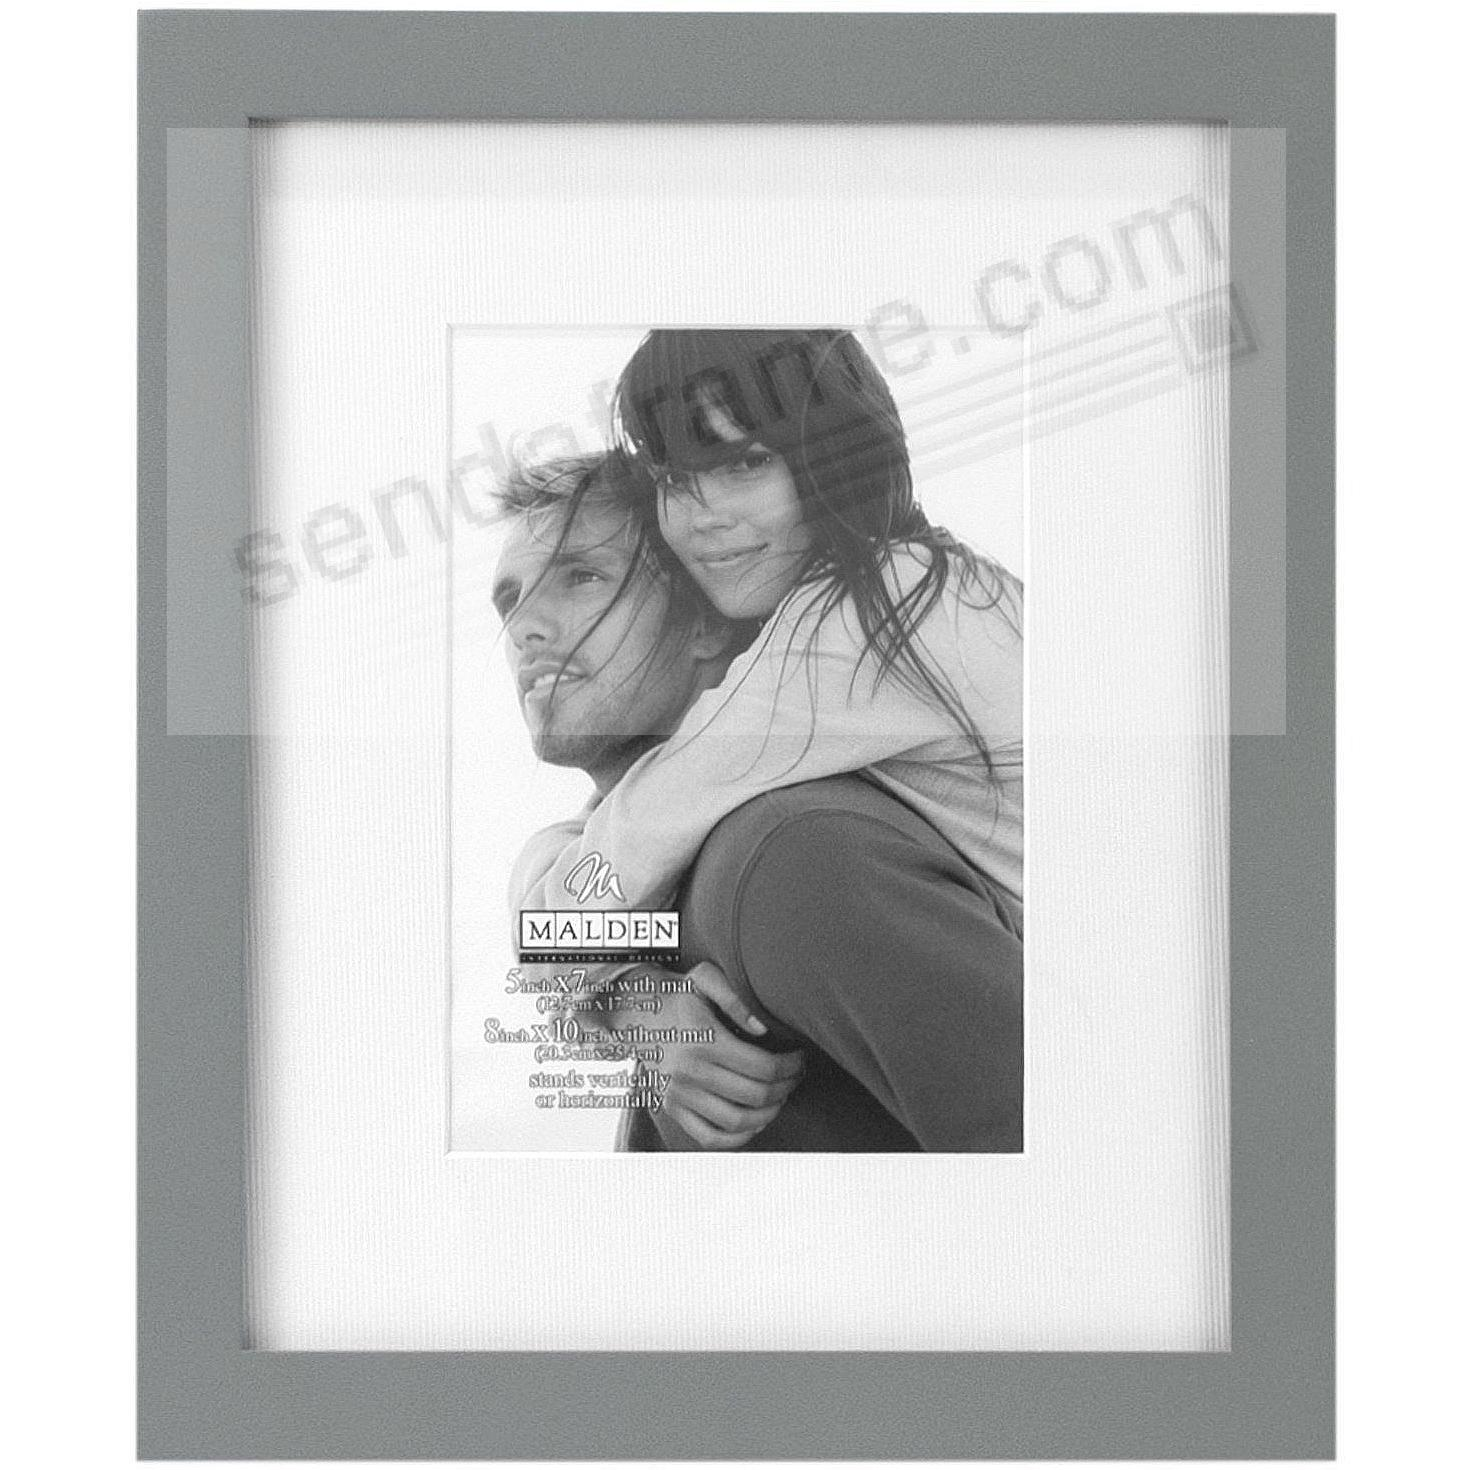 LINEAR WOOD Gray Frame with 11x13/8x10 coordinated mat by Malden®